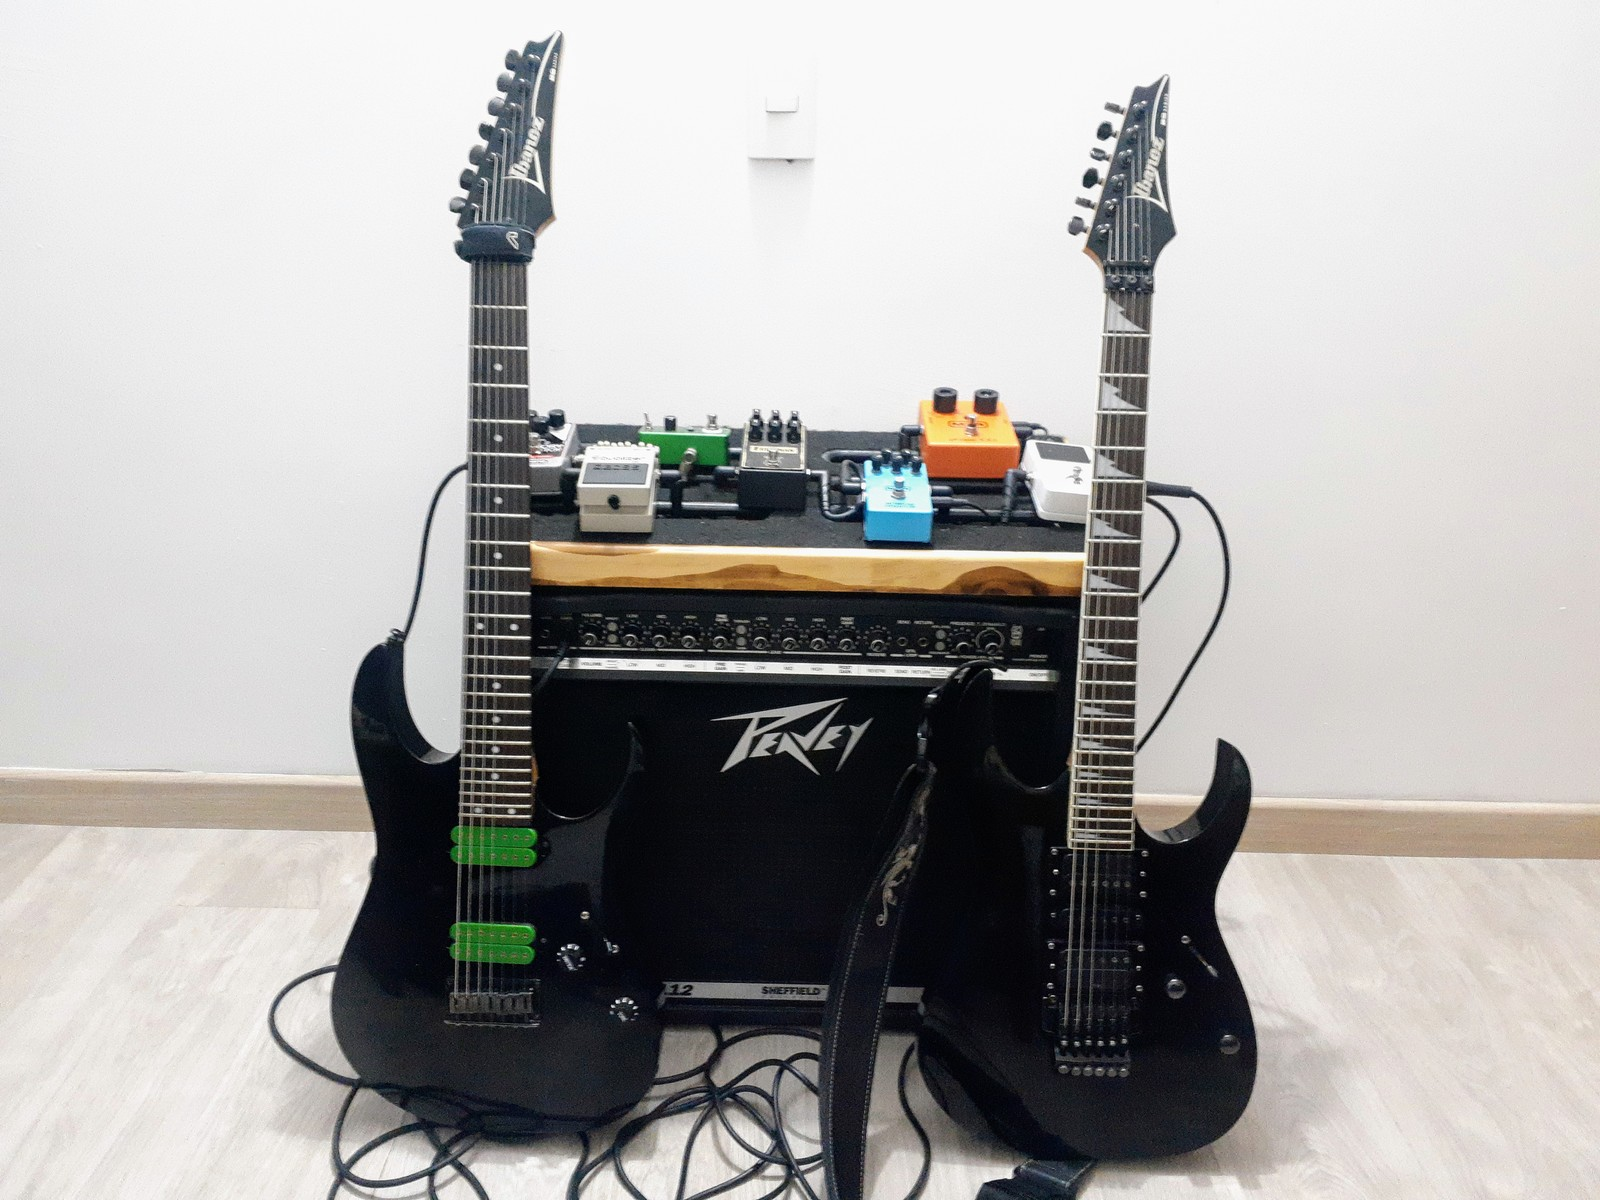 oscar_g_martinez_p's music gear photo containing Ibanez RG370DX, Peavey Bandit 112 - Transtube, Ibanez RG7321, Graph Tech TUSQ XL PT-6642-00, DiMarzio Blaze II, Hipshot 7 In Line Locking Tuners, Mountain Racks Pedalboard, and Amaya Electronics Power Supply